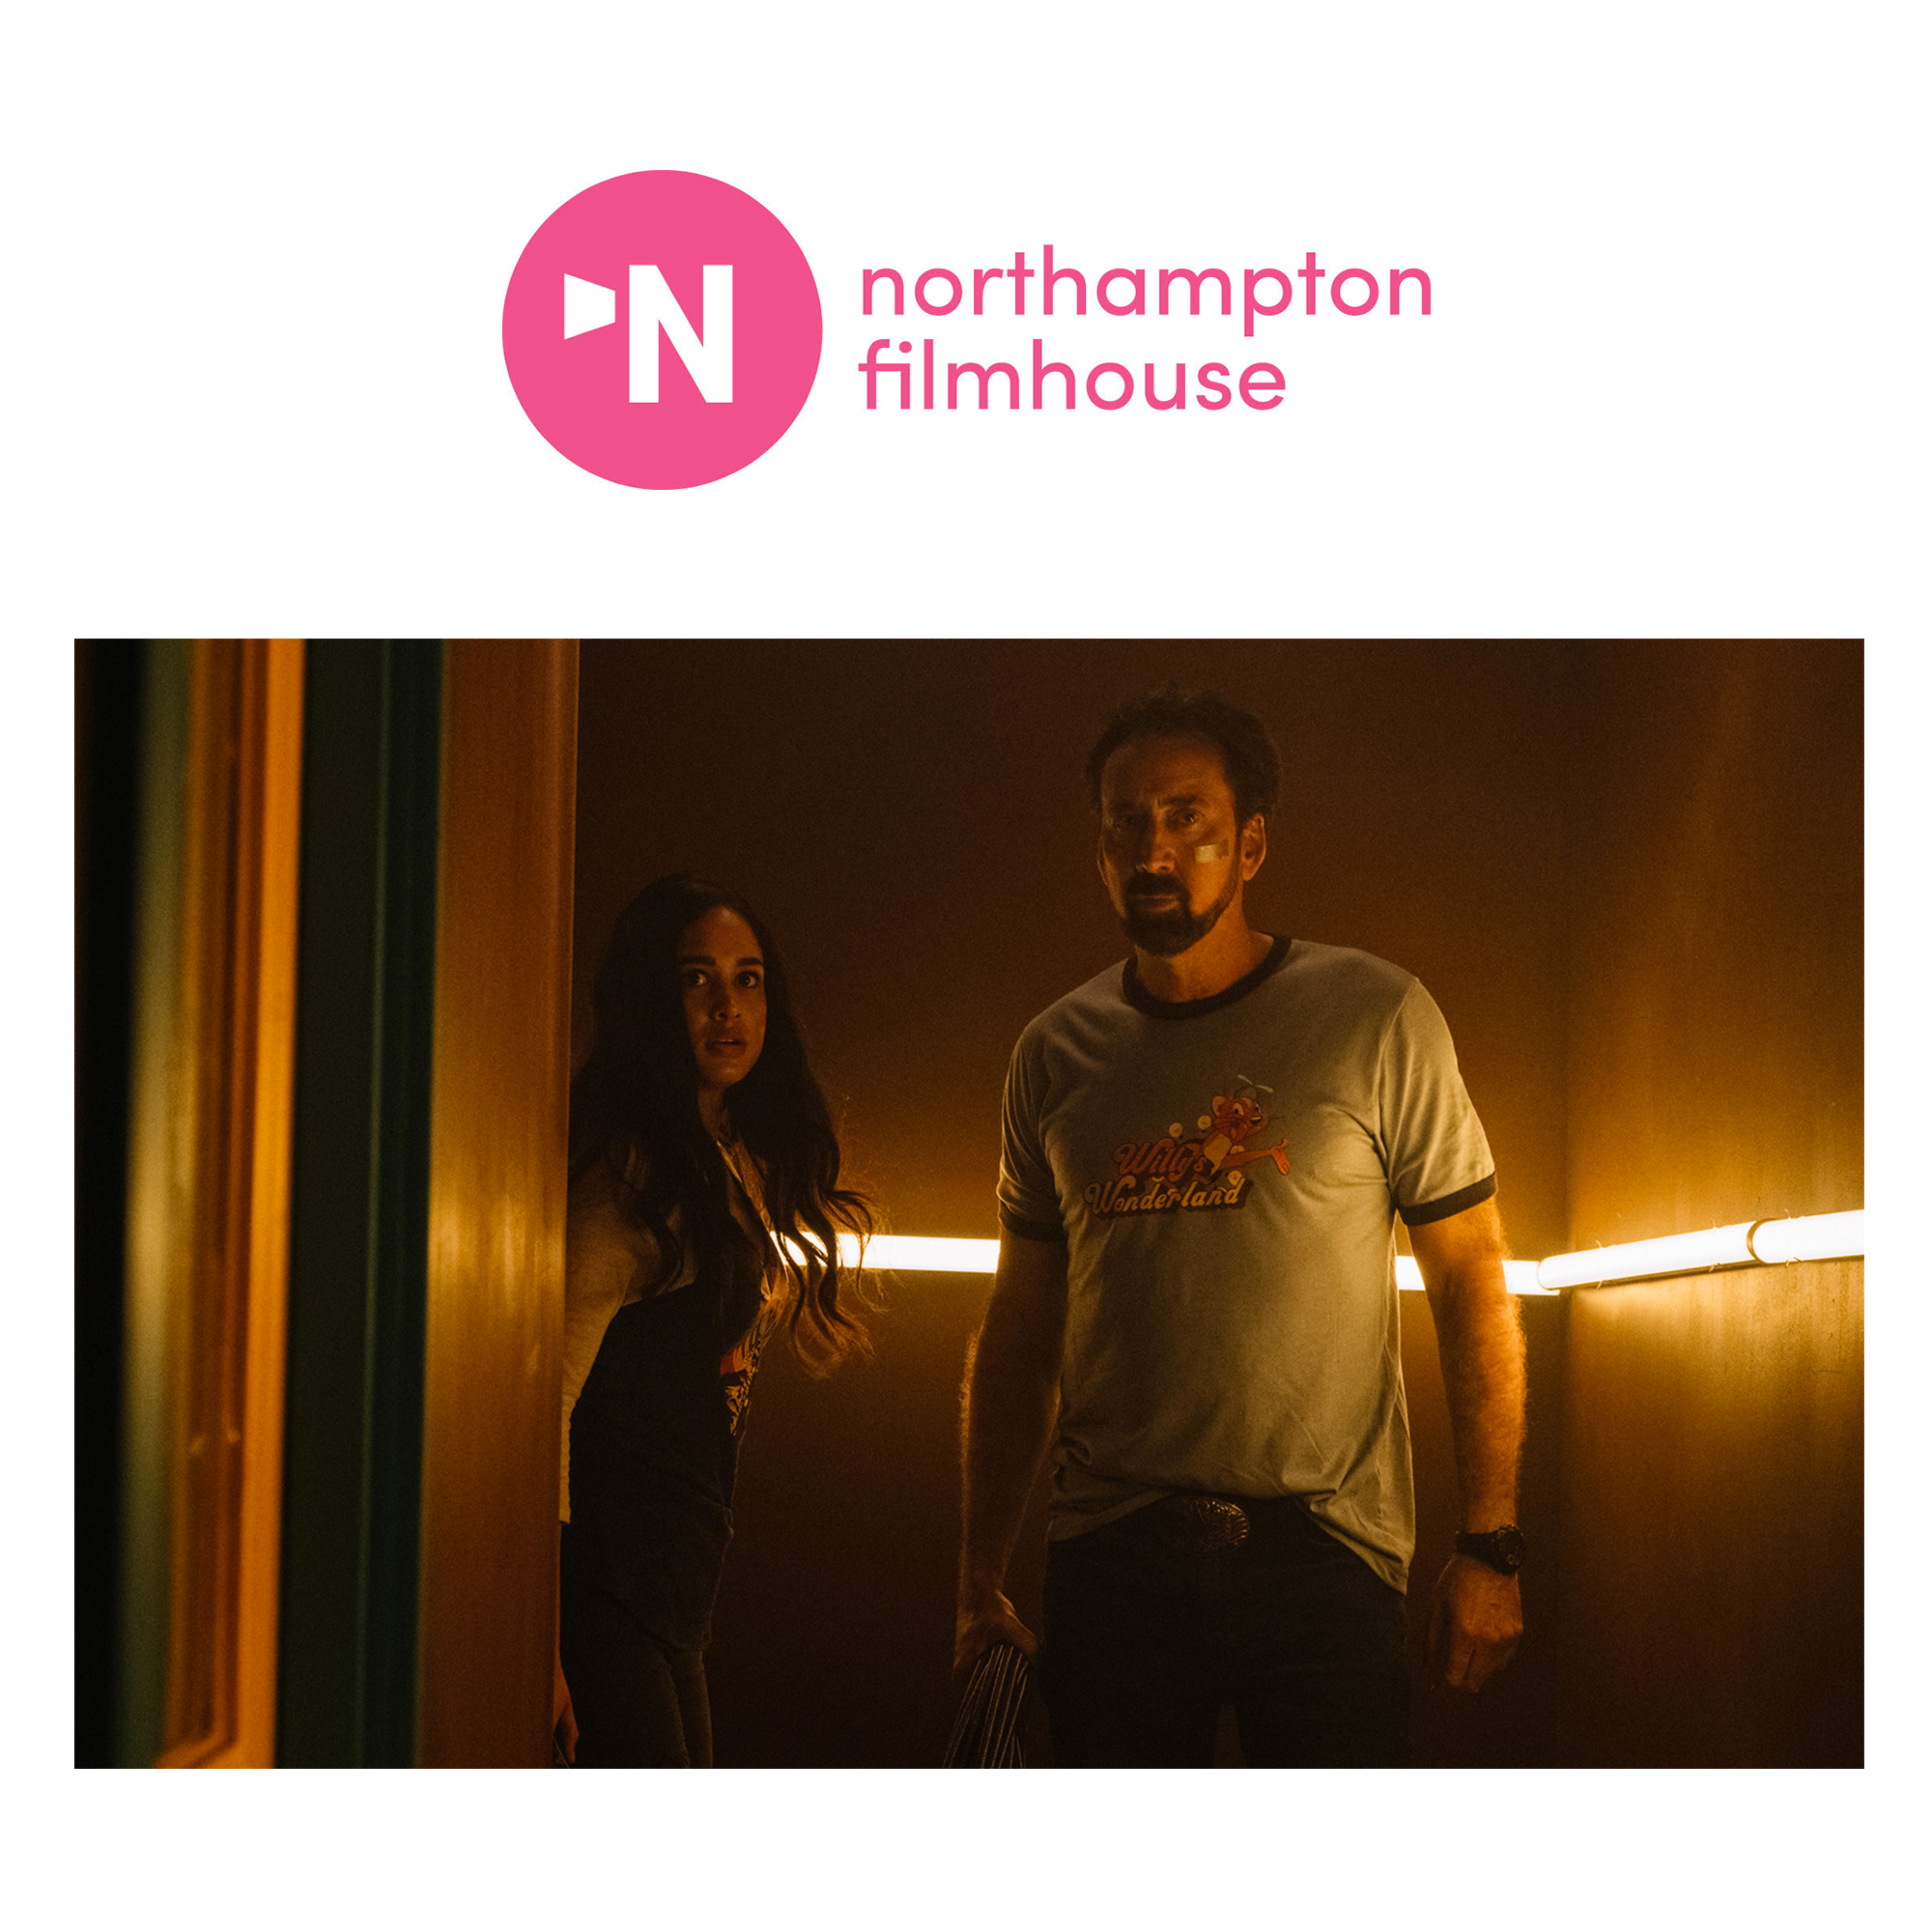 Willy's Wonderland at Northampton Filmhouse